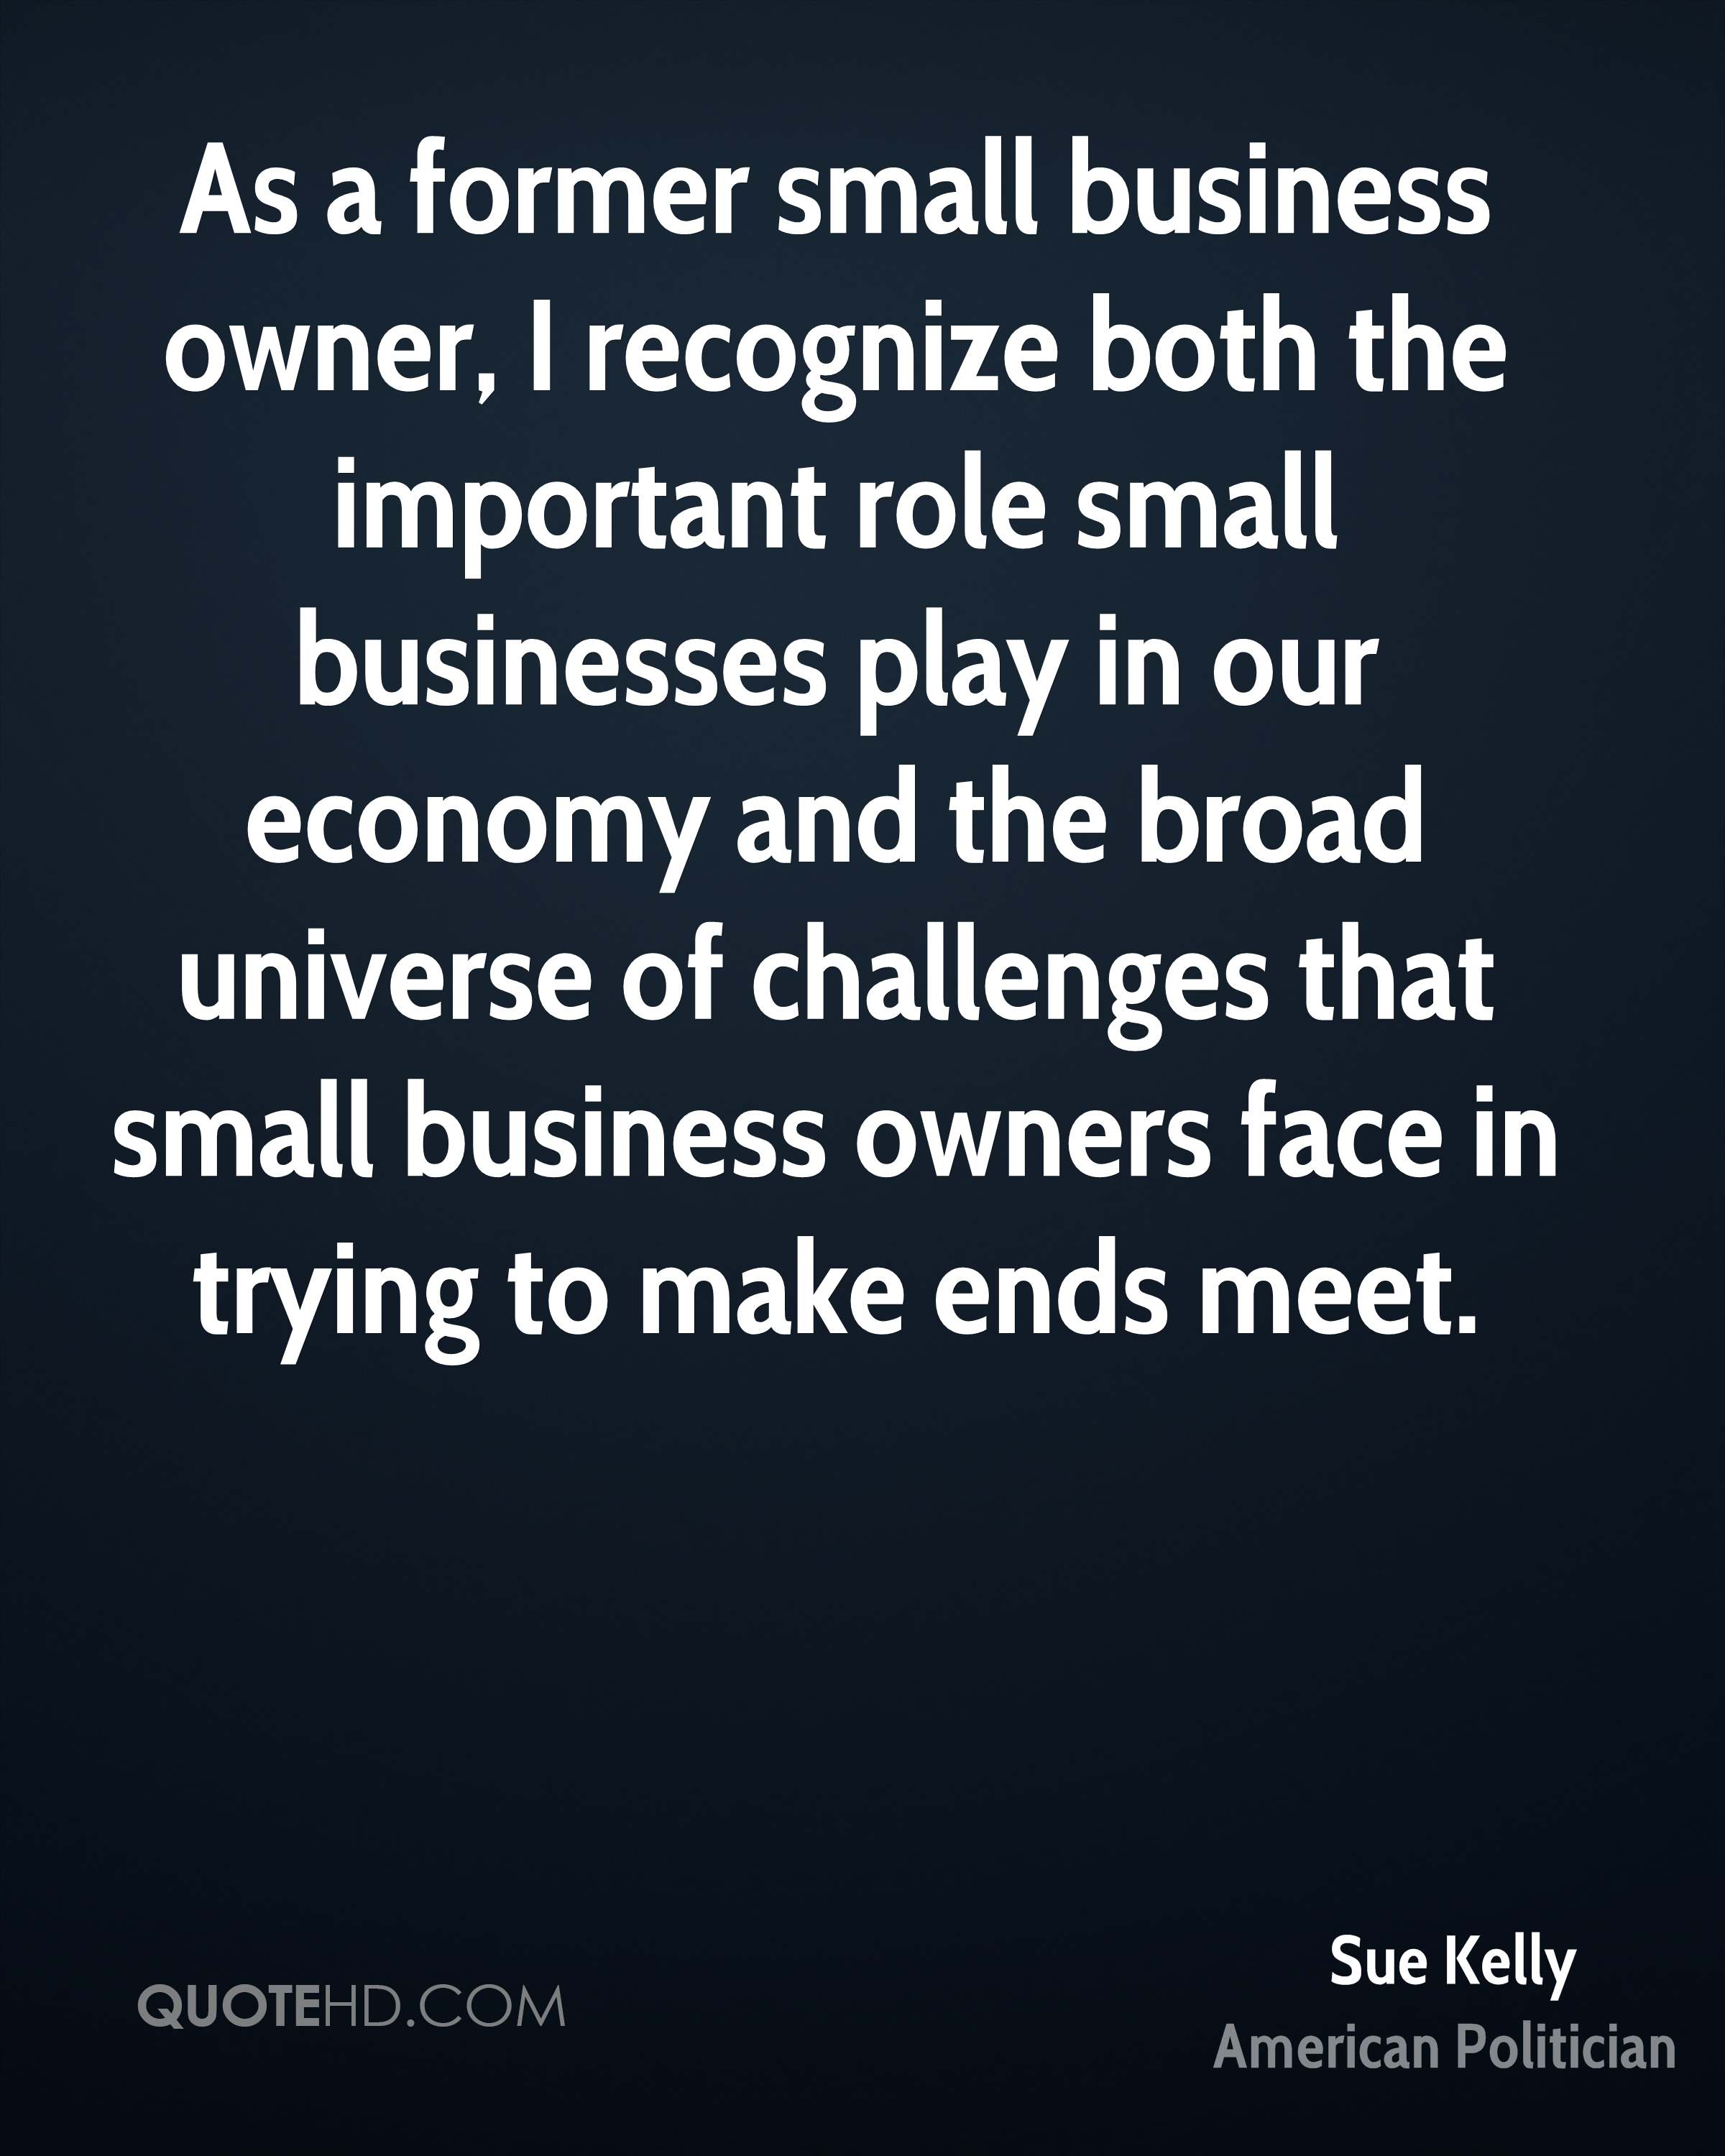 As a former small business owner, I recognize both the important role small businesses play in our economy and the broad universe of challenges that small business owners face in trying to make ends meet.